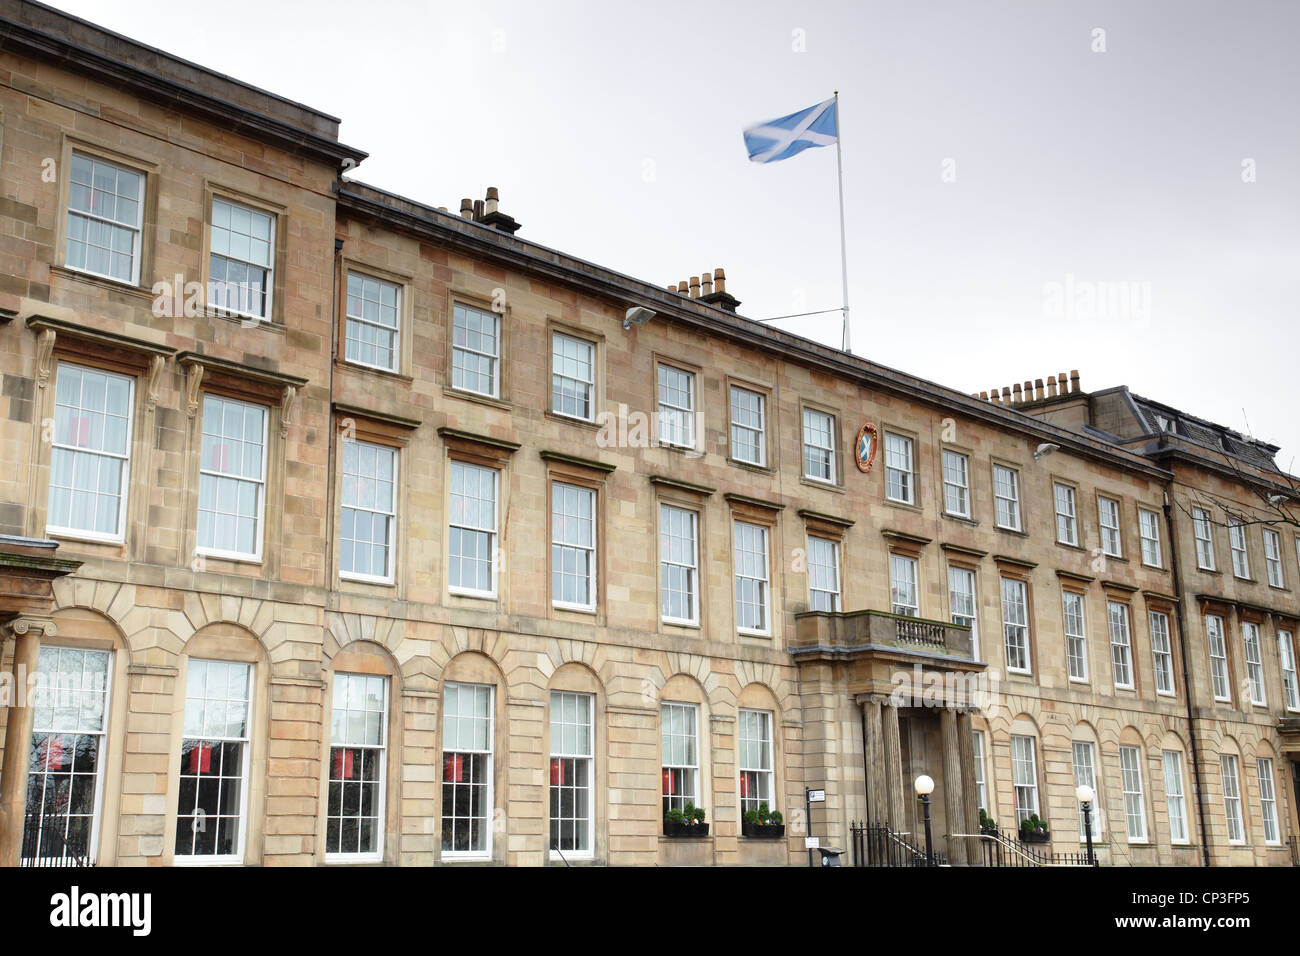 The Blythswood Square Hotel in the former Royal Scottish Automobile Club in Glasgow city centre, Scotland, UK - Stock Image